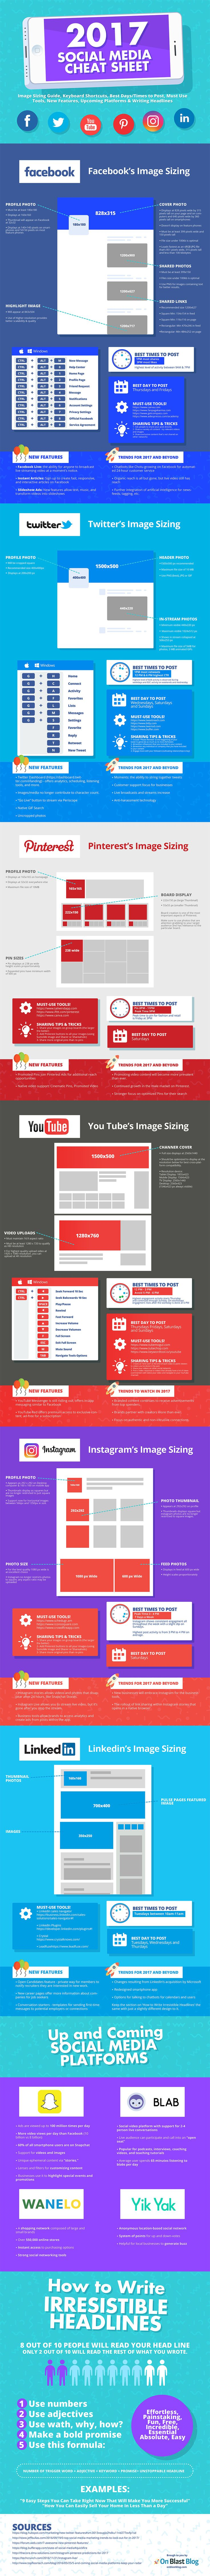 The 2017 #SocialMedia Cheat Sheet: What Beginners Need to Know #Infographic #Marketing